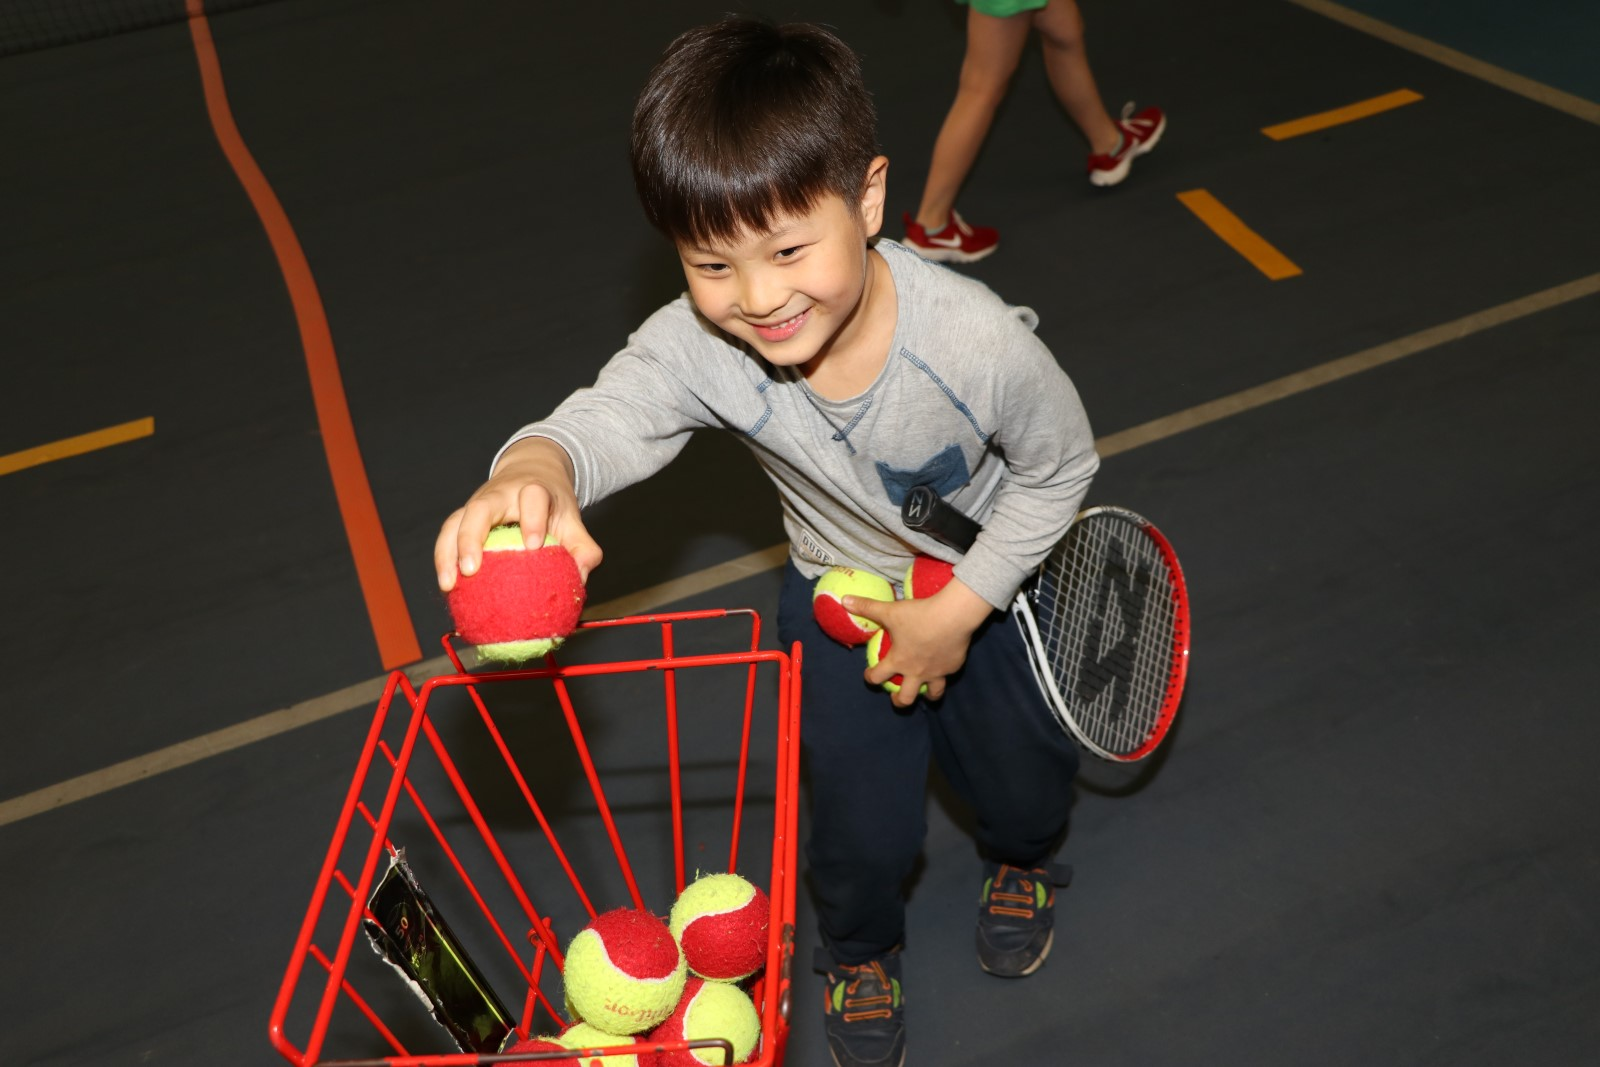 infant boy putting tennis balls in a basket.jpg